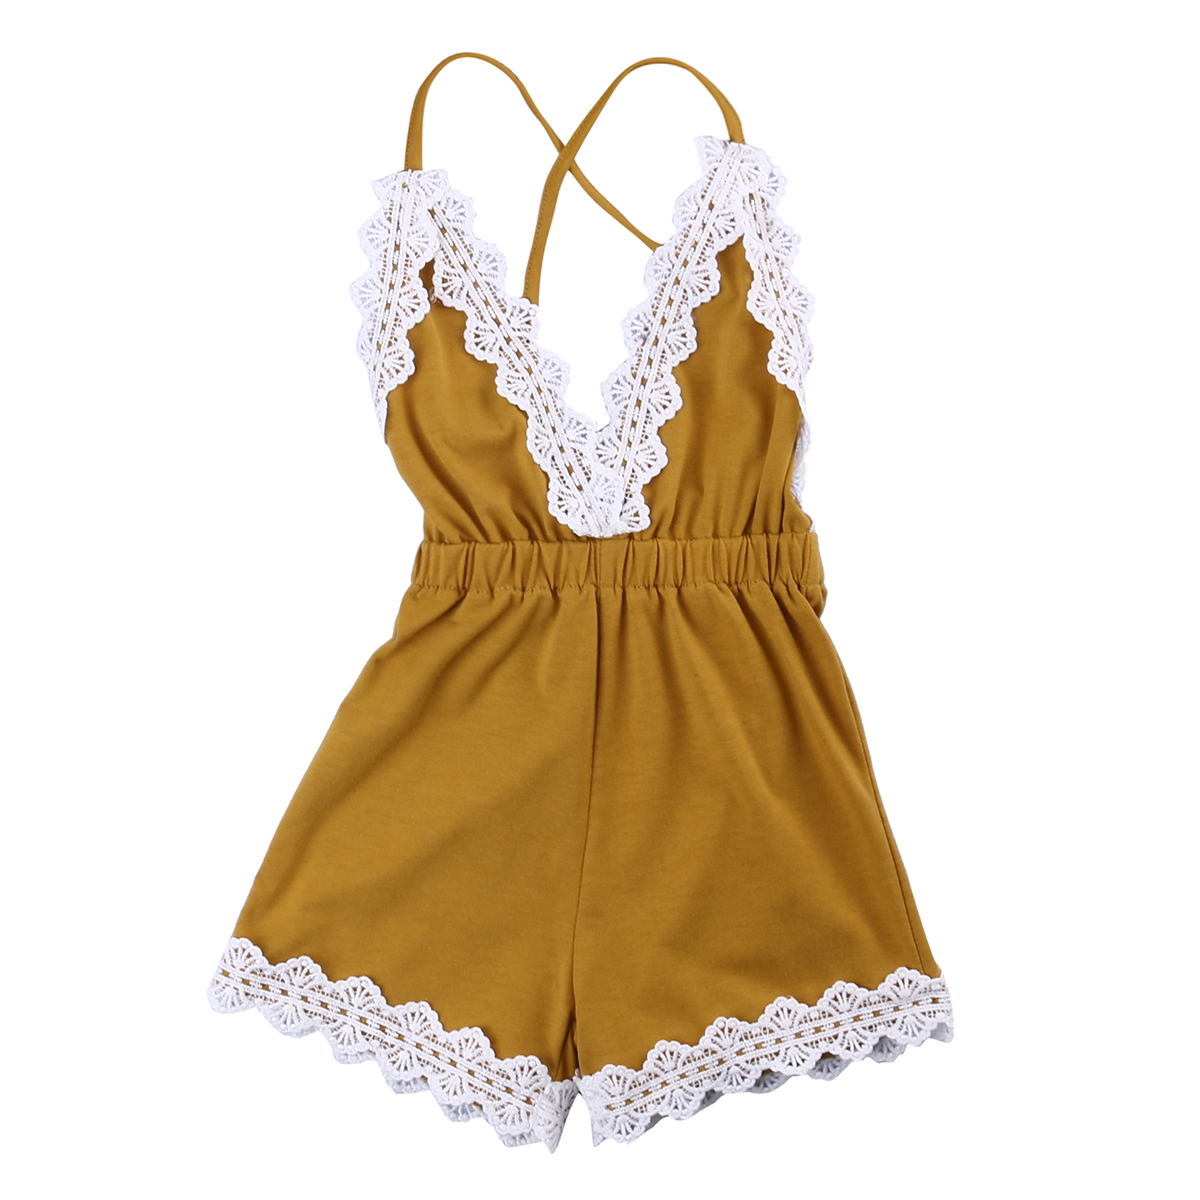 2017 New Cute Newborn Baby Clothes 0-24M Infant Bebes Lace Romper Girl Sleeveless V-Neck Jumpsuit Sunsuit Outfit Kid Clothing цена 2016